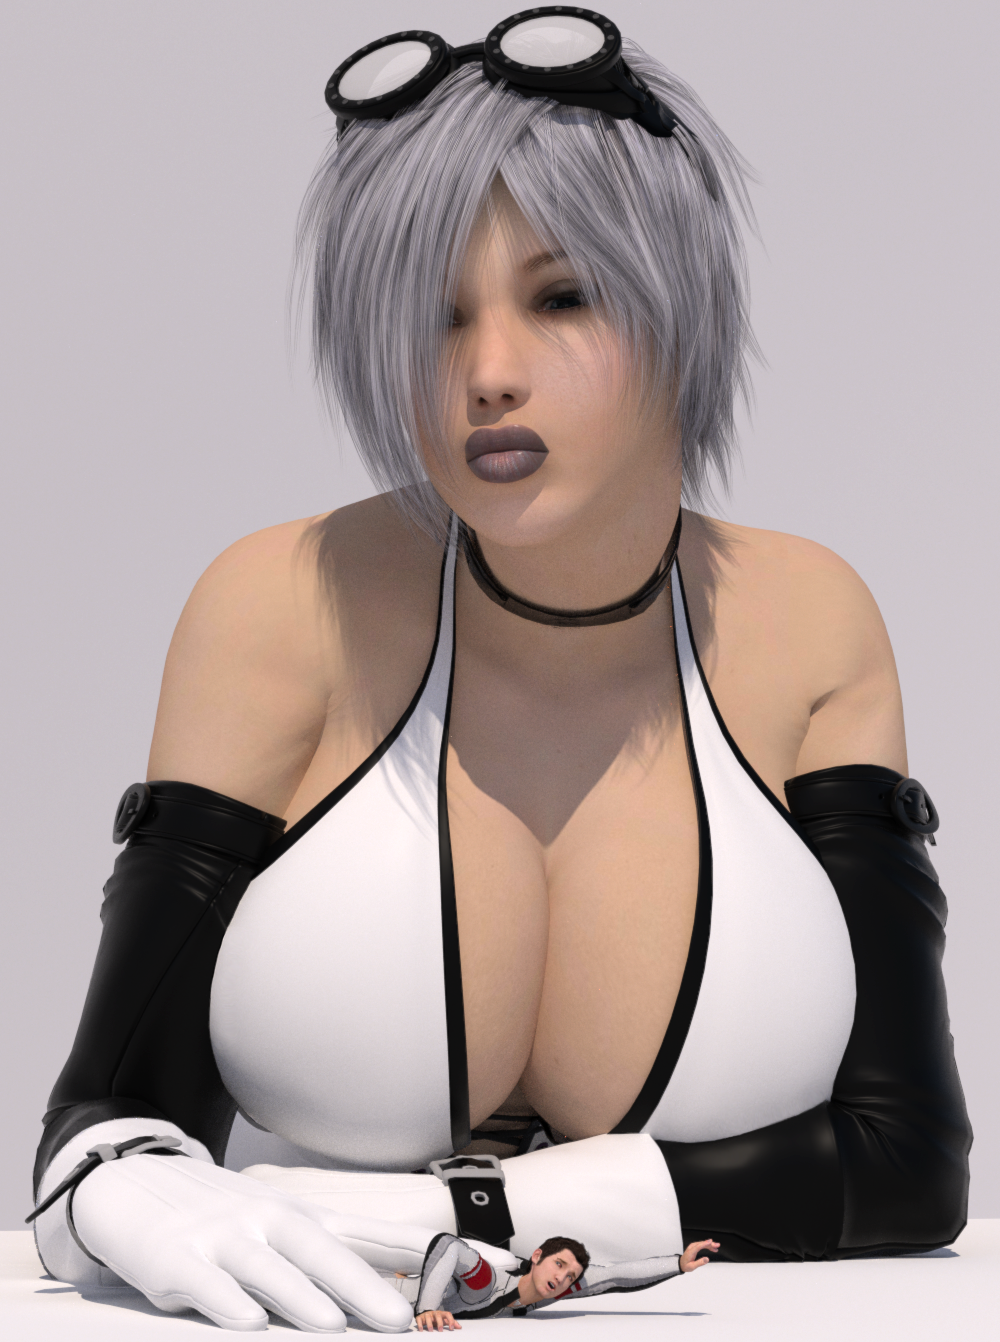 156681 - boomgts cleavage giantess gloves ivory large_boobs pinned pinned_down poser shrunken_man